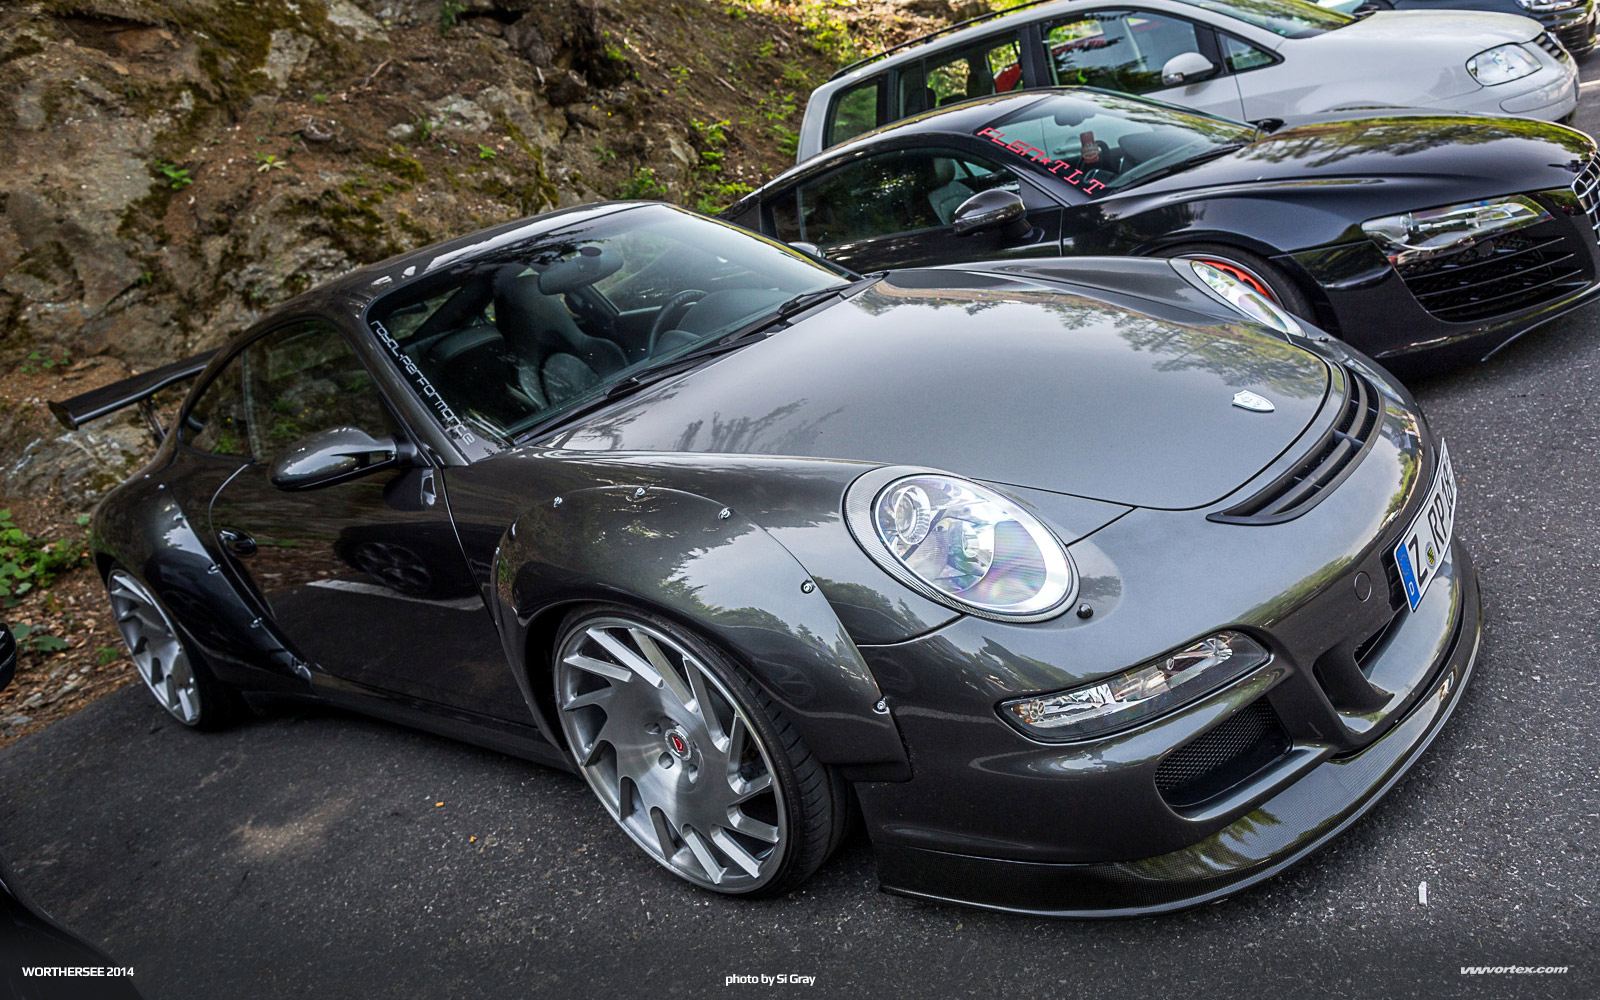 2014-Worthersee-Day-11-Si-Gray-452